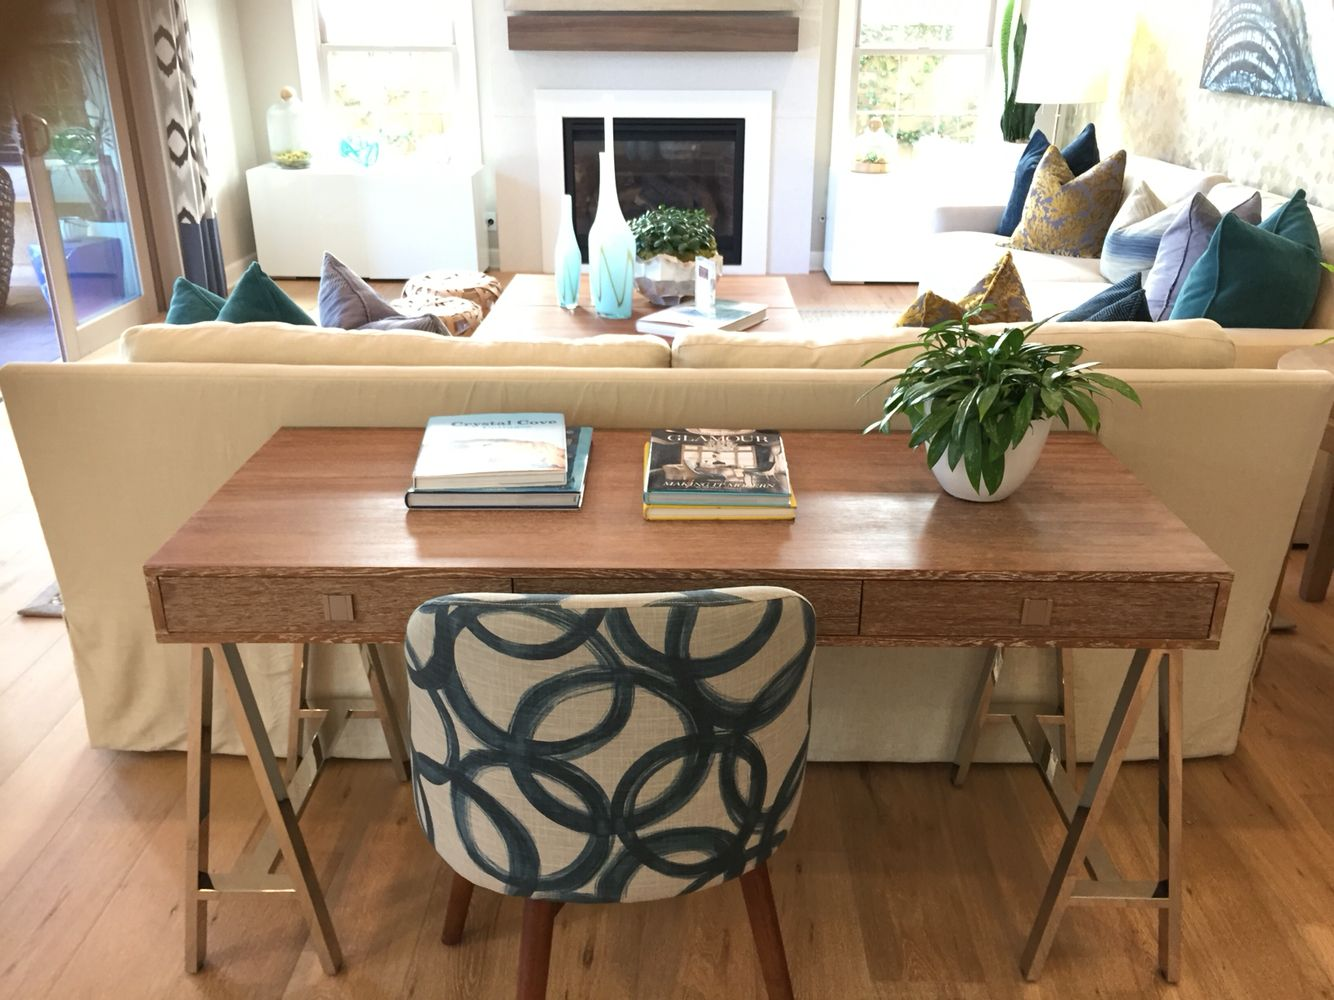 25 Best Desk Behind Couch Ideas On Pinterest